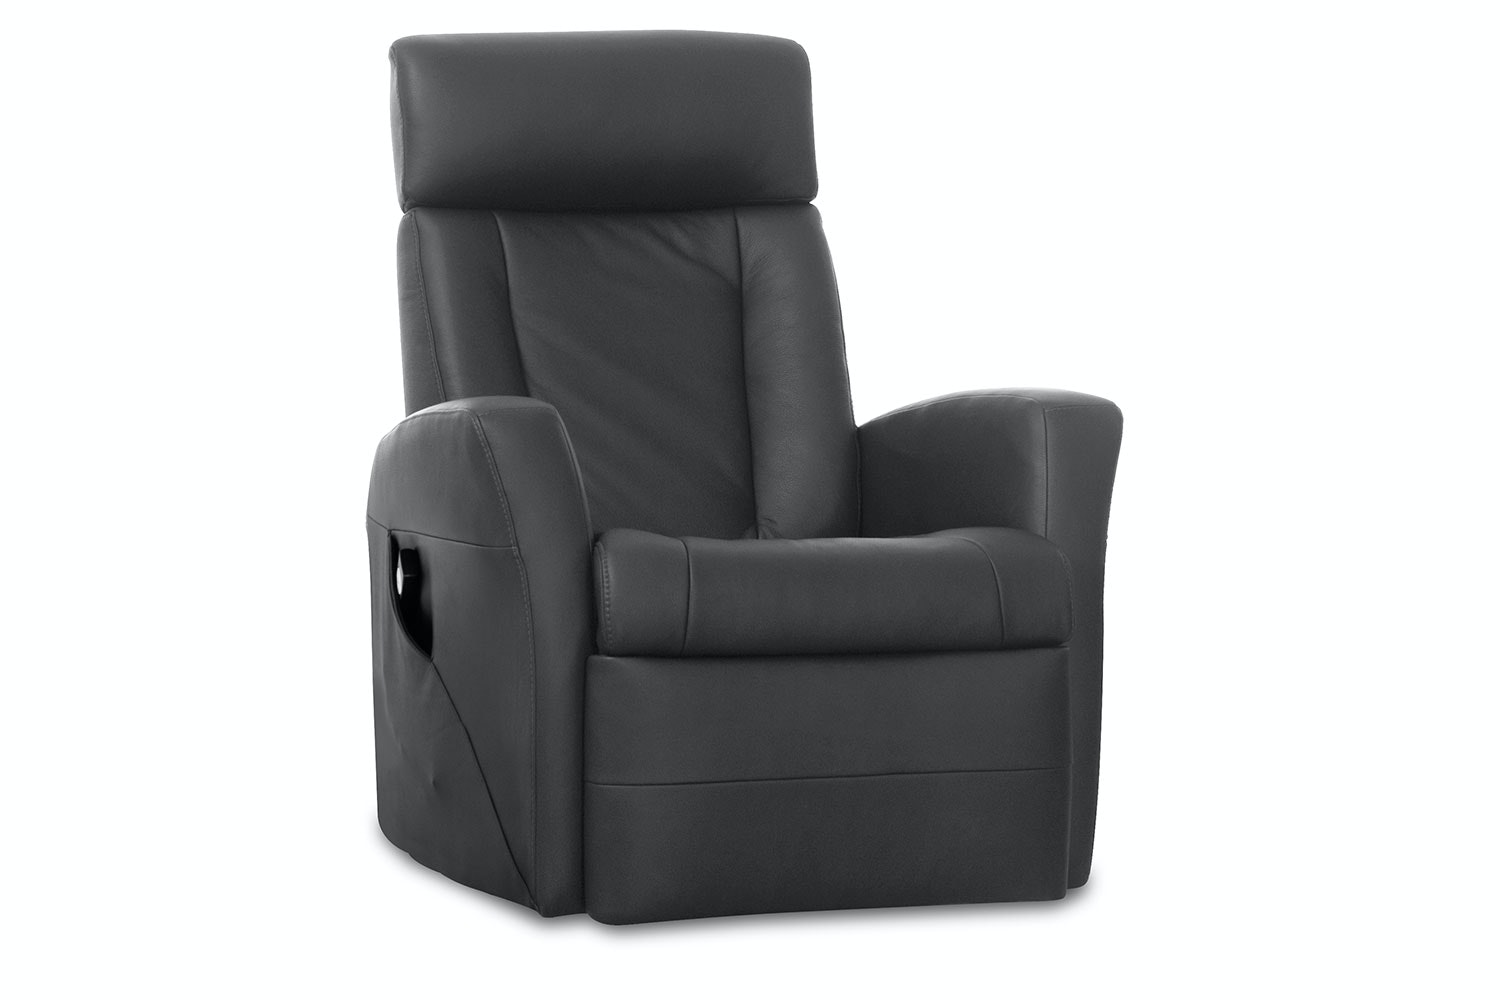 Lotus Leather Multi Function Recliner Chair - Standard - Trend - IMG  sc 1 st  Harvey Norman & Lotus Leather Multi Function Recliner Chair - Standard - Trend ... islam-shia.org